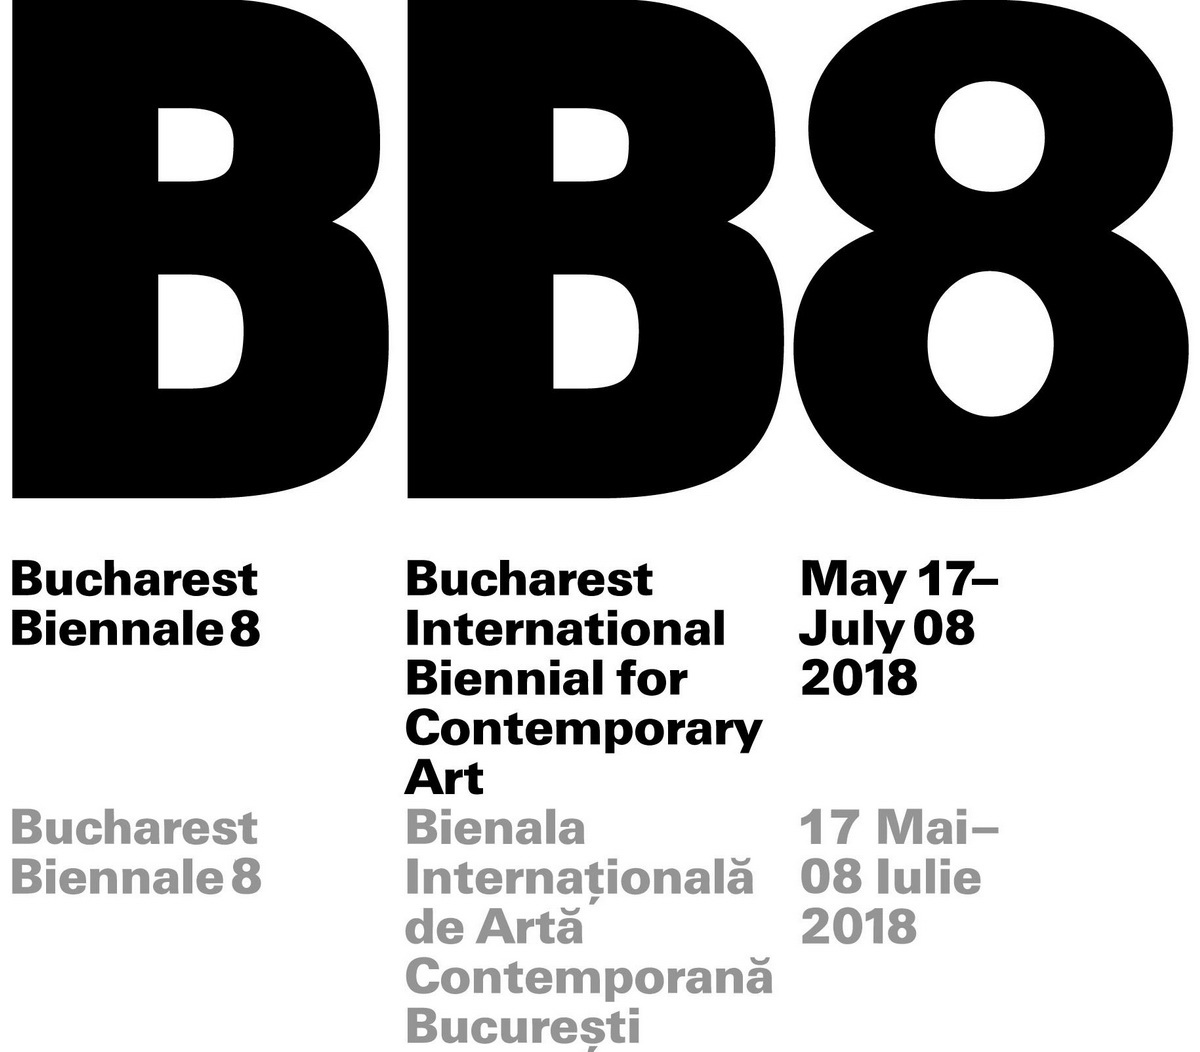 Bucharest International Biennial for Contemporary Art 2018